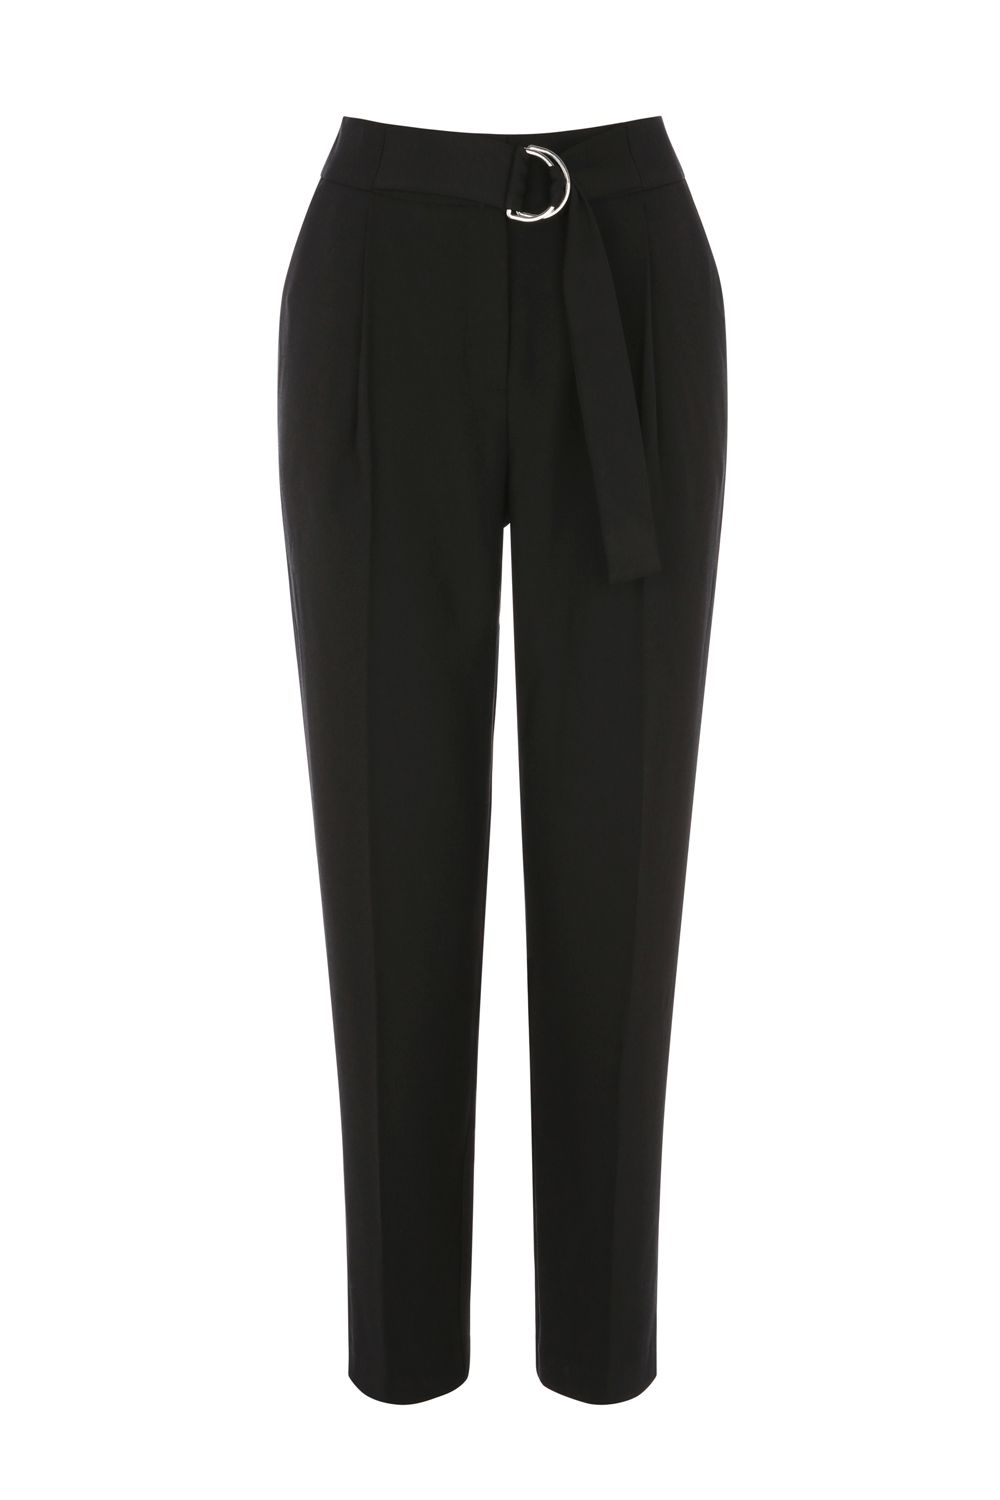 Oasis LUXE UTILITY TROUSER, Black